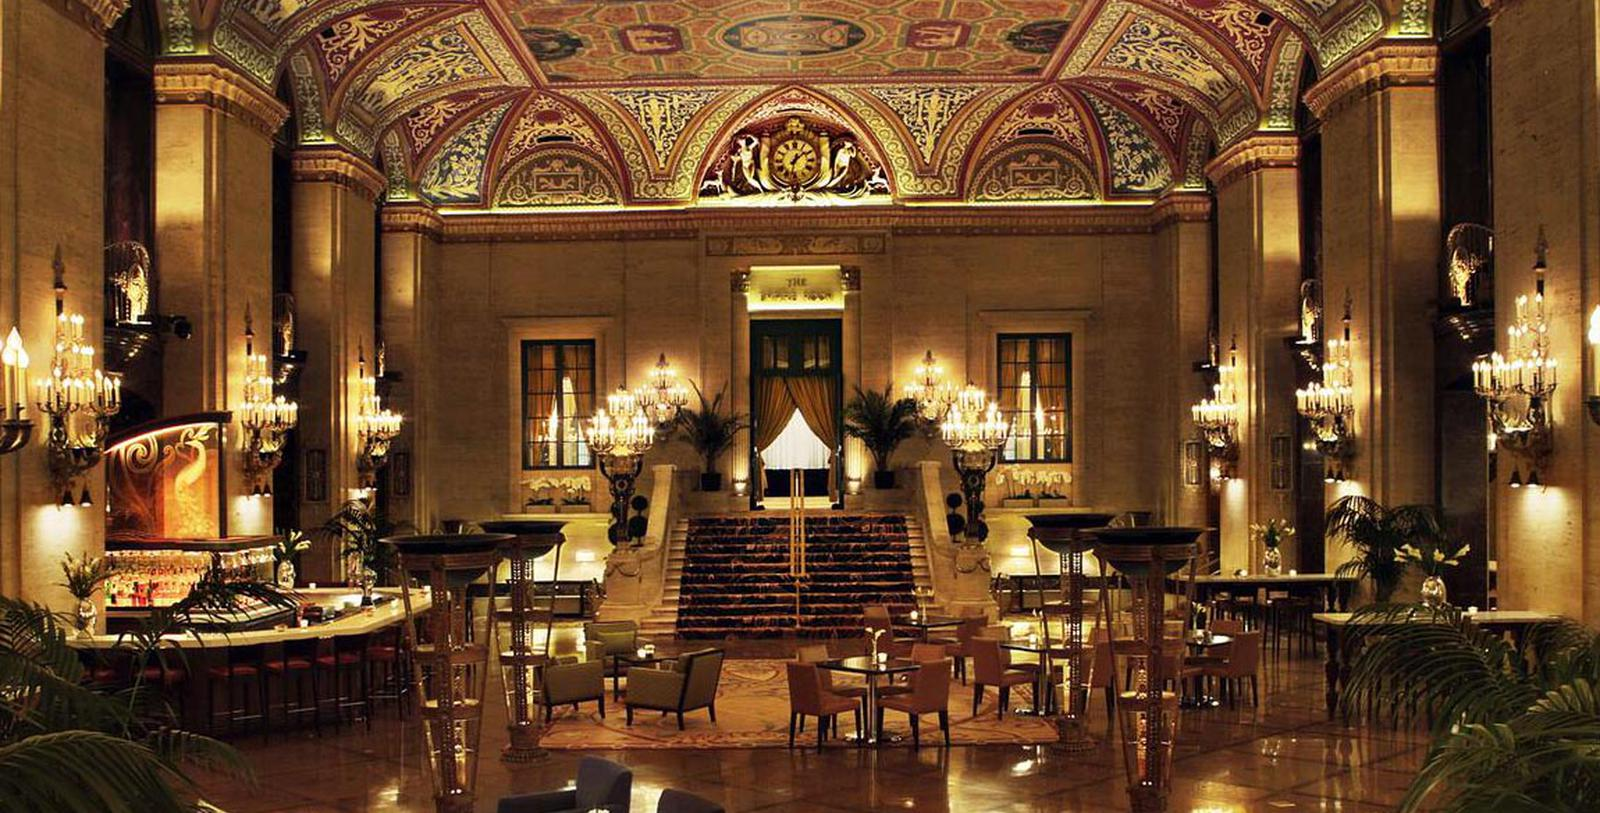 Interior lobby of the Palmer House®, A Hilton Hotel in Chicago, Illinois.